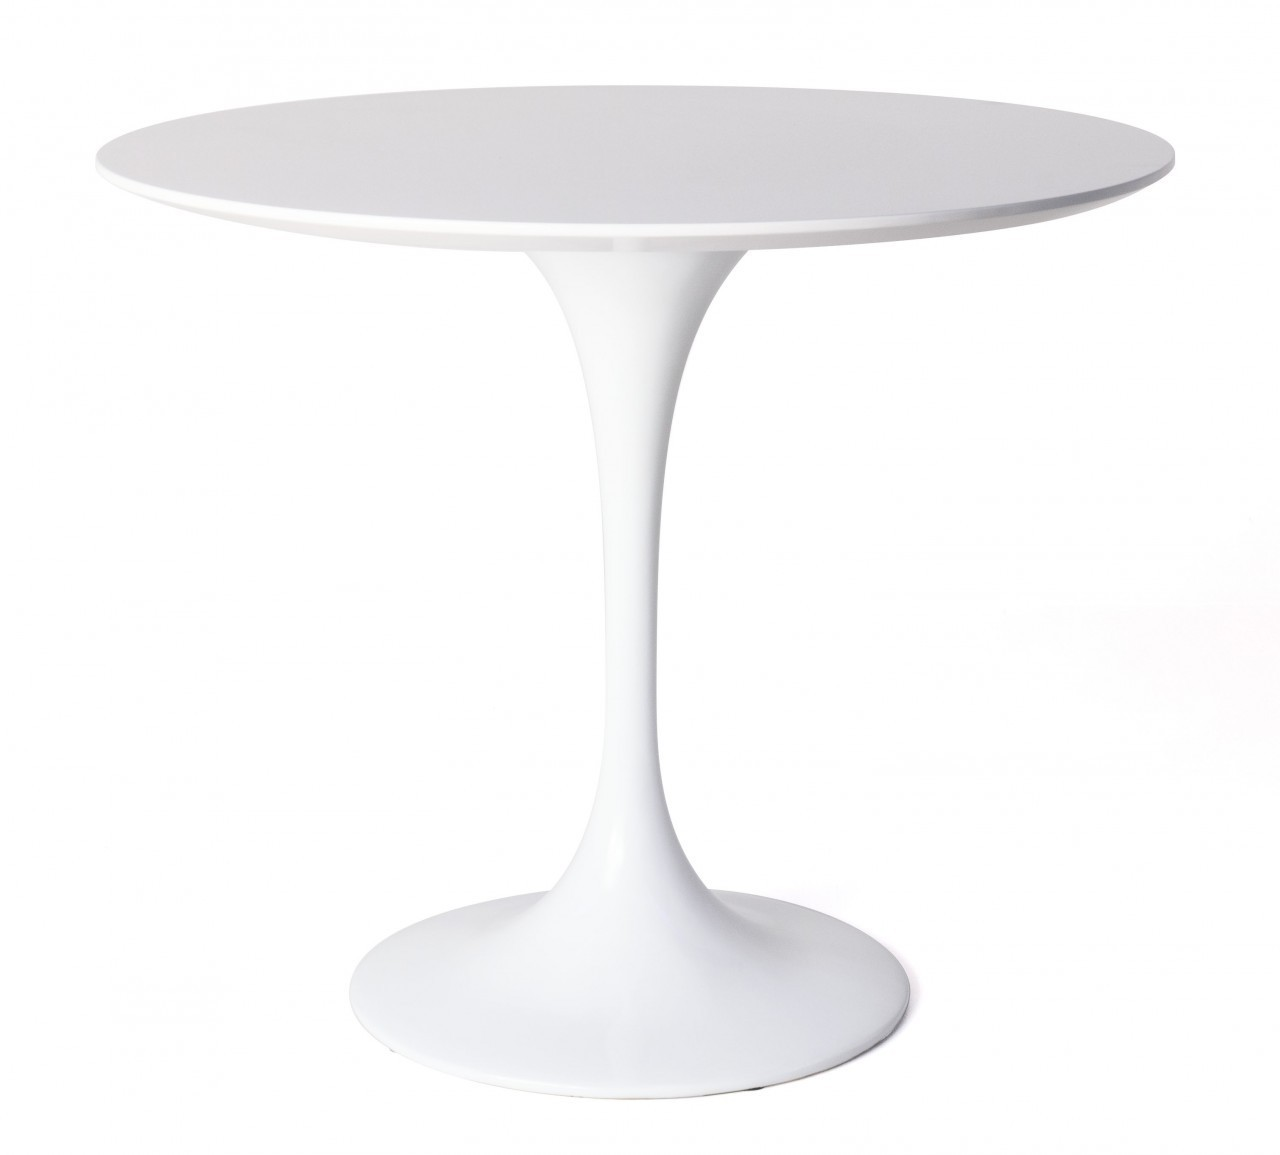 Eero saarinen tulip table 80cm design for Table table table